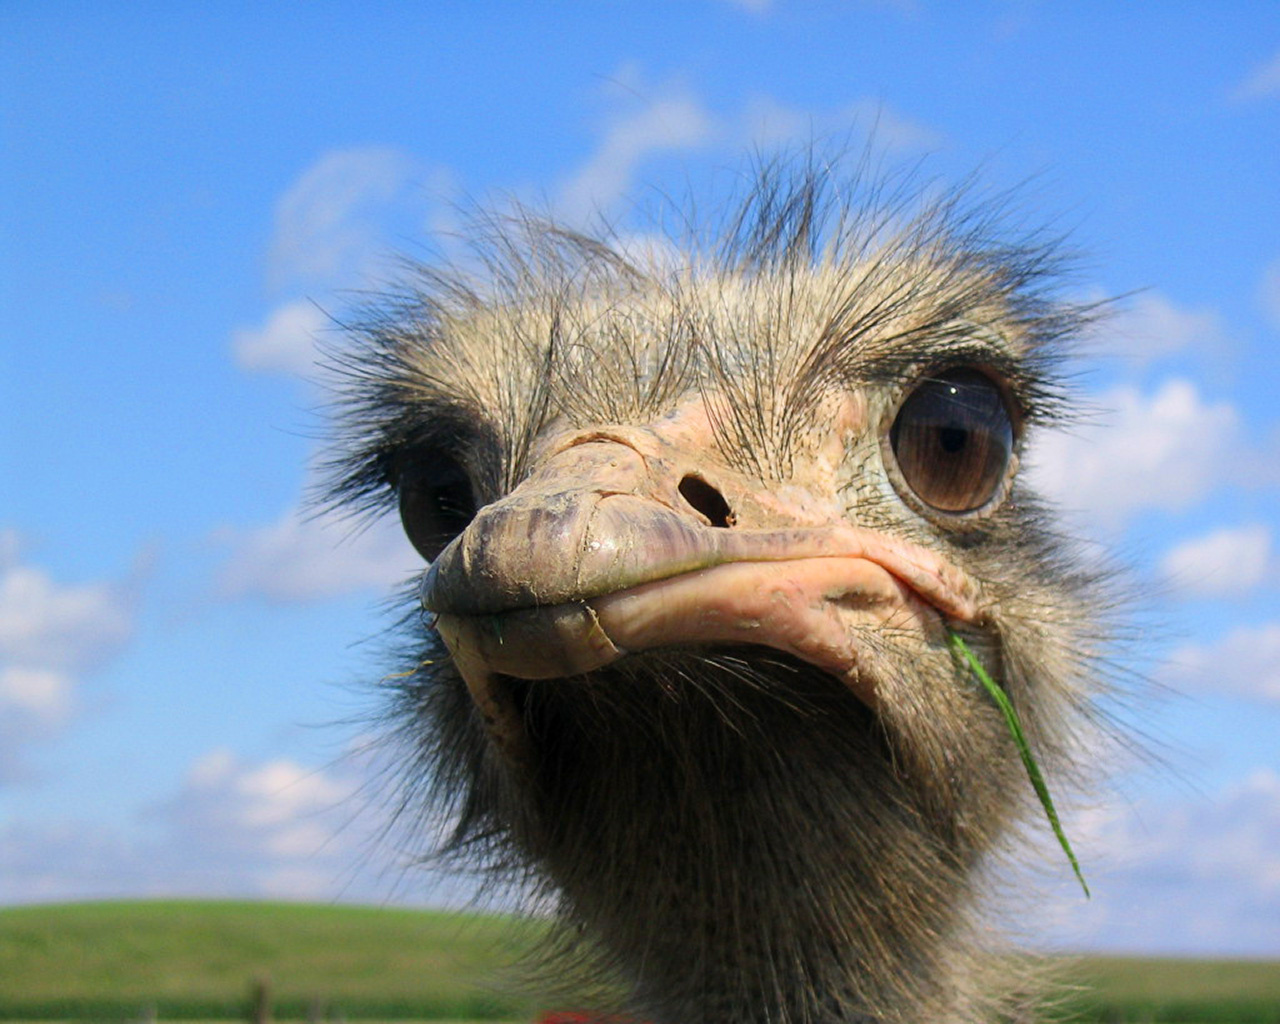 http://adlandcreative.files.wordpress.com/2010/02/ostrich1280x1024ls.jpg